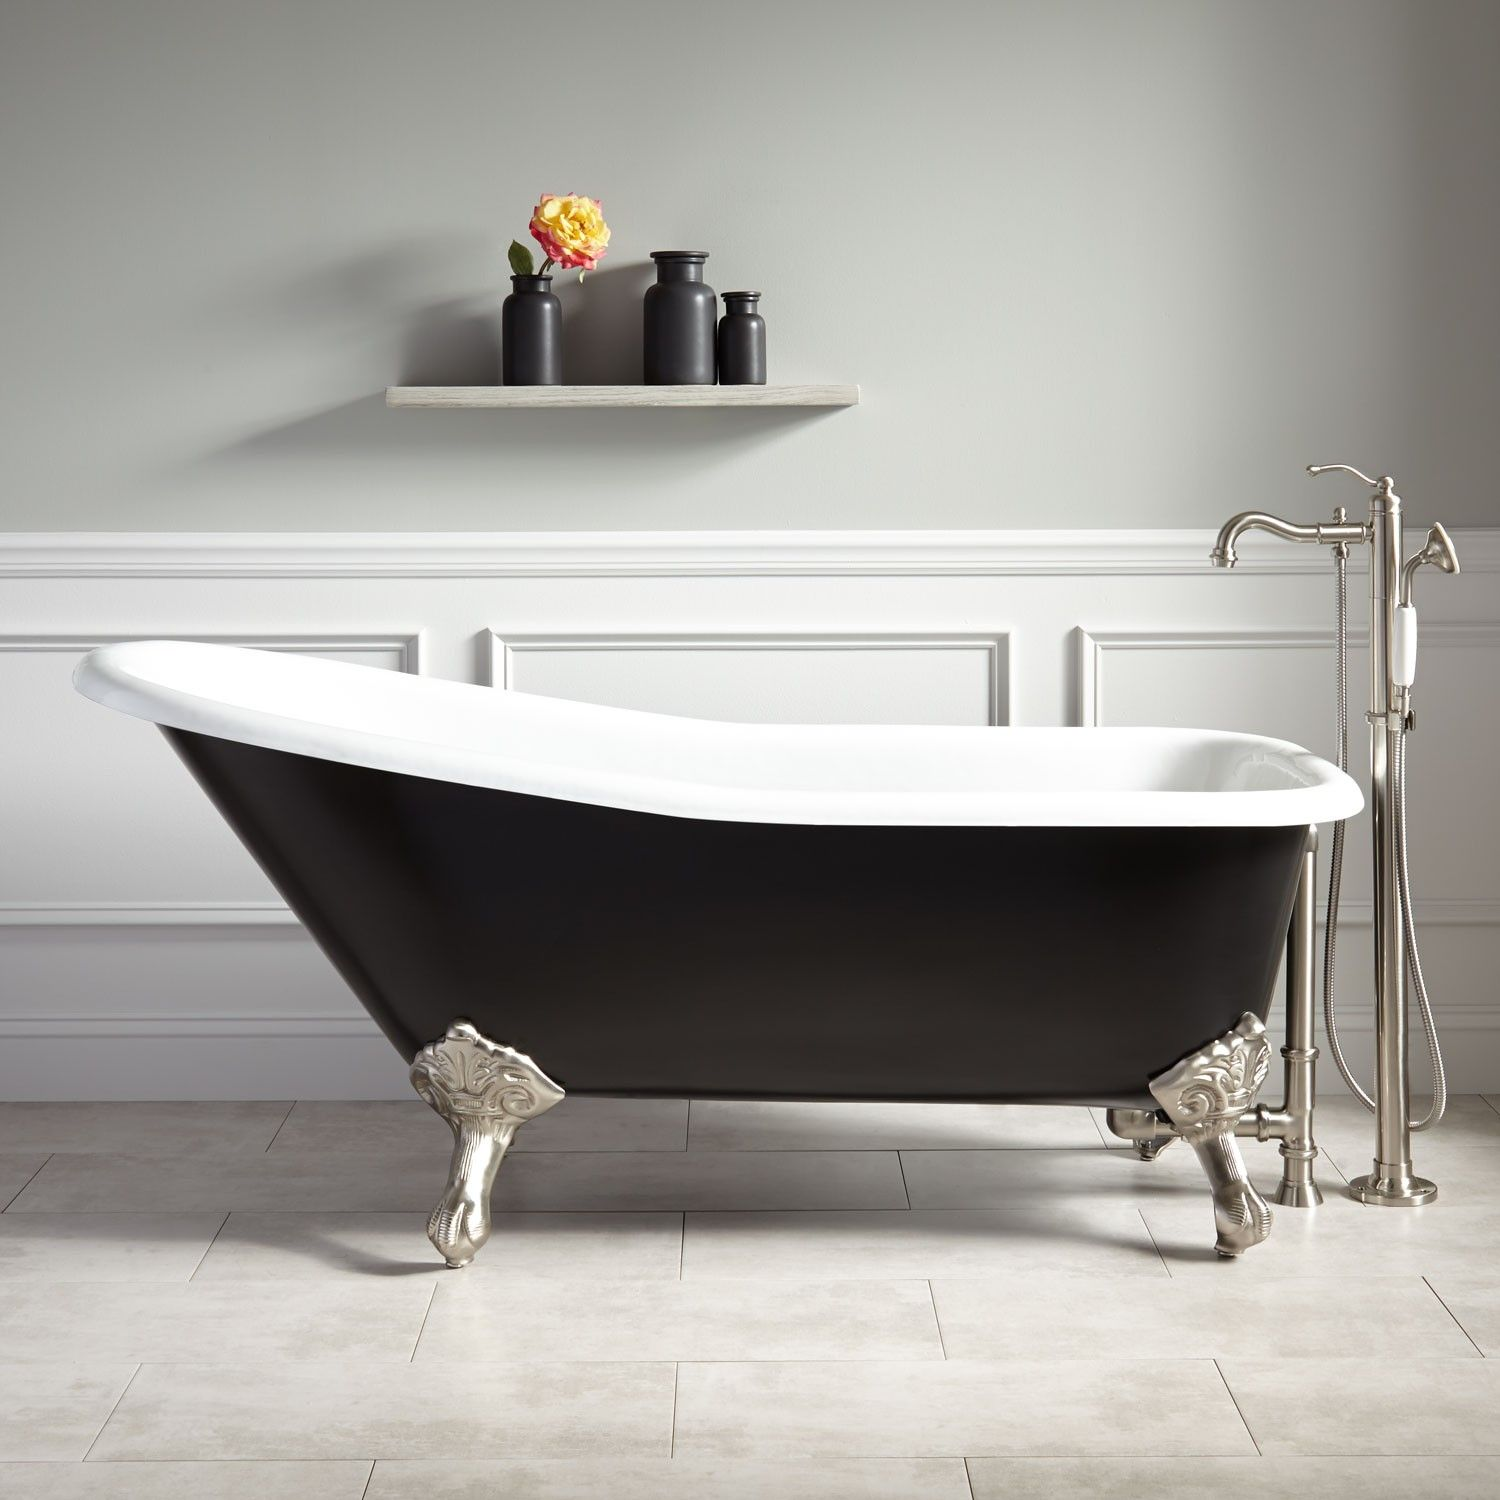 corner drop ideas in head cushioned whirlpool romantic by bathtubs white acrylic rest rounded face two with surrounded bathtub black tubs bathroom to person